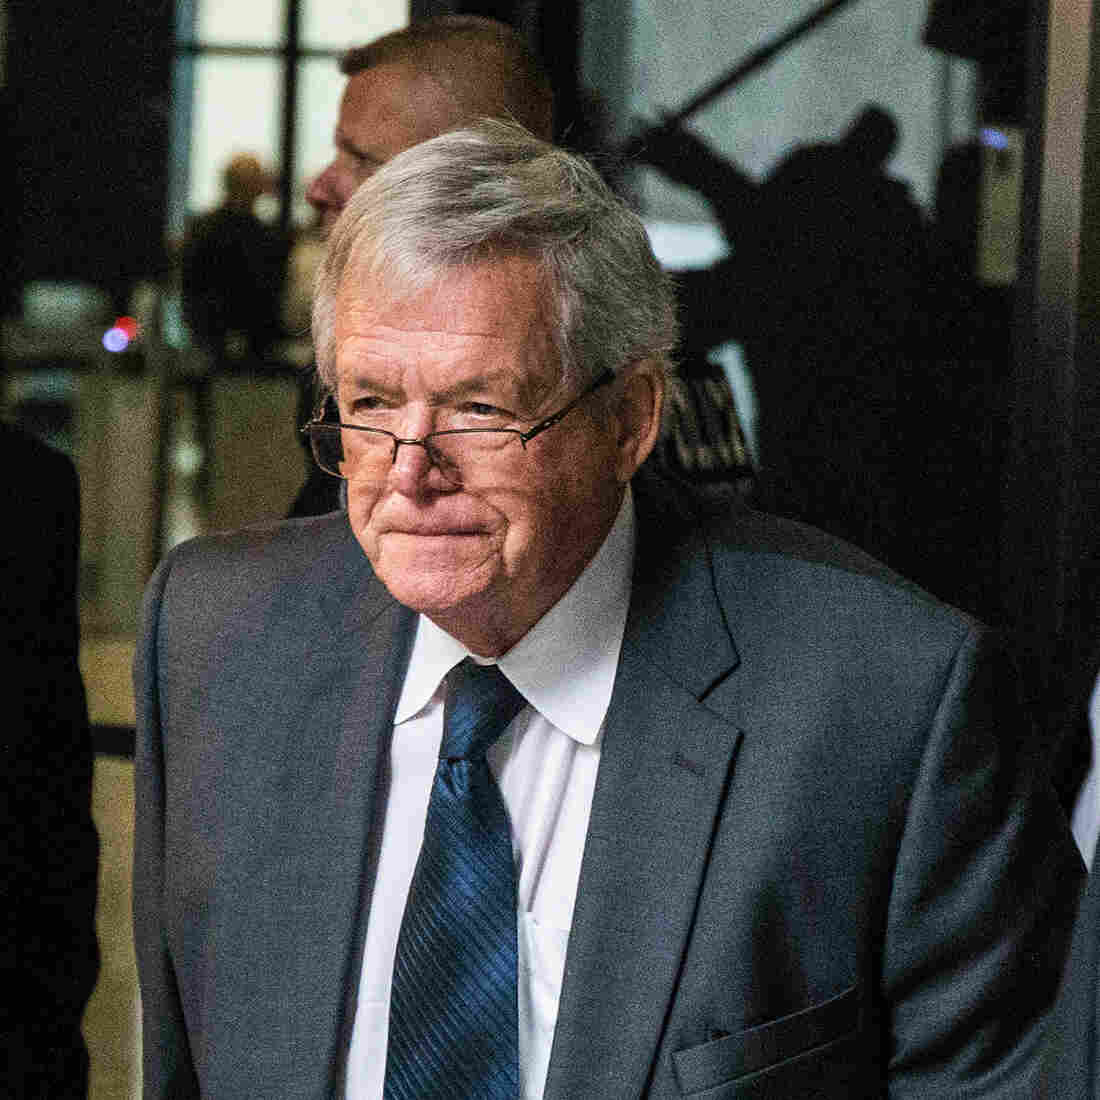 Former U.S. House Speaker Dennis Hastert leaves a federal courthouse in Chicago this fall after pleading guilty to charges related to a hush money scandal.